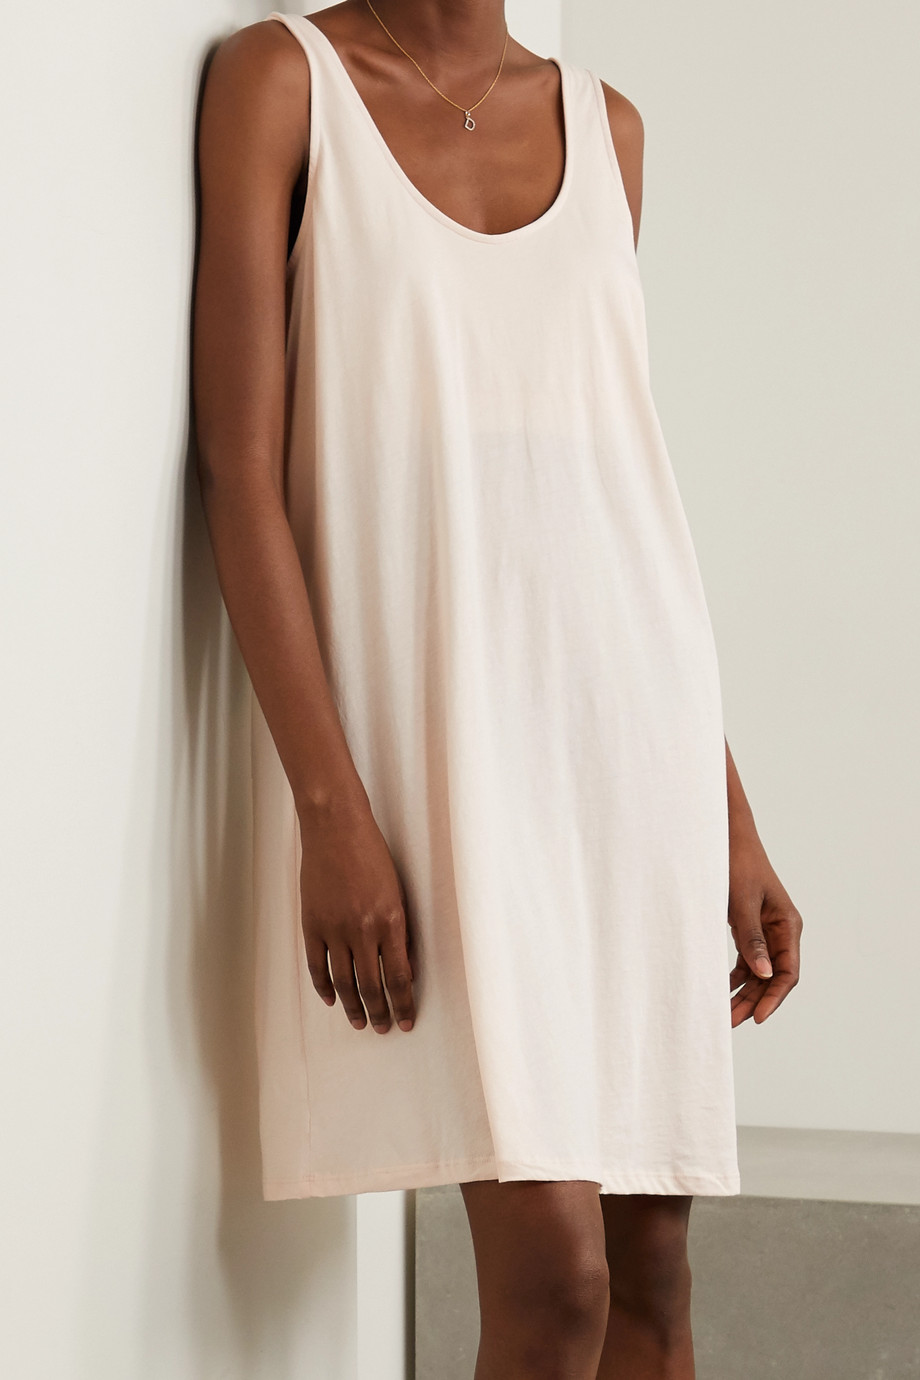 Skin Catherine Pima cotton-jersey nightdress